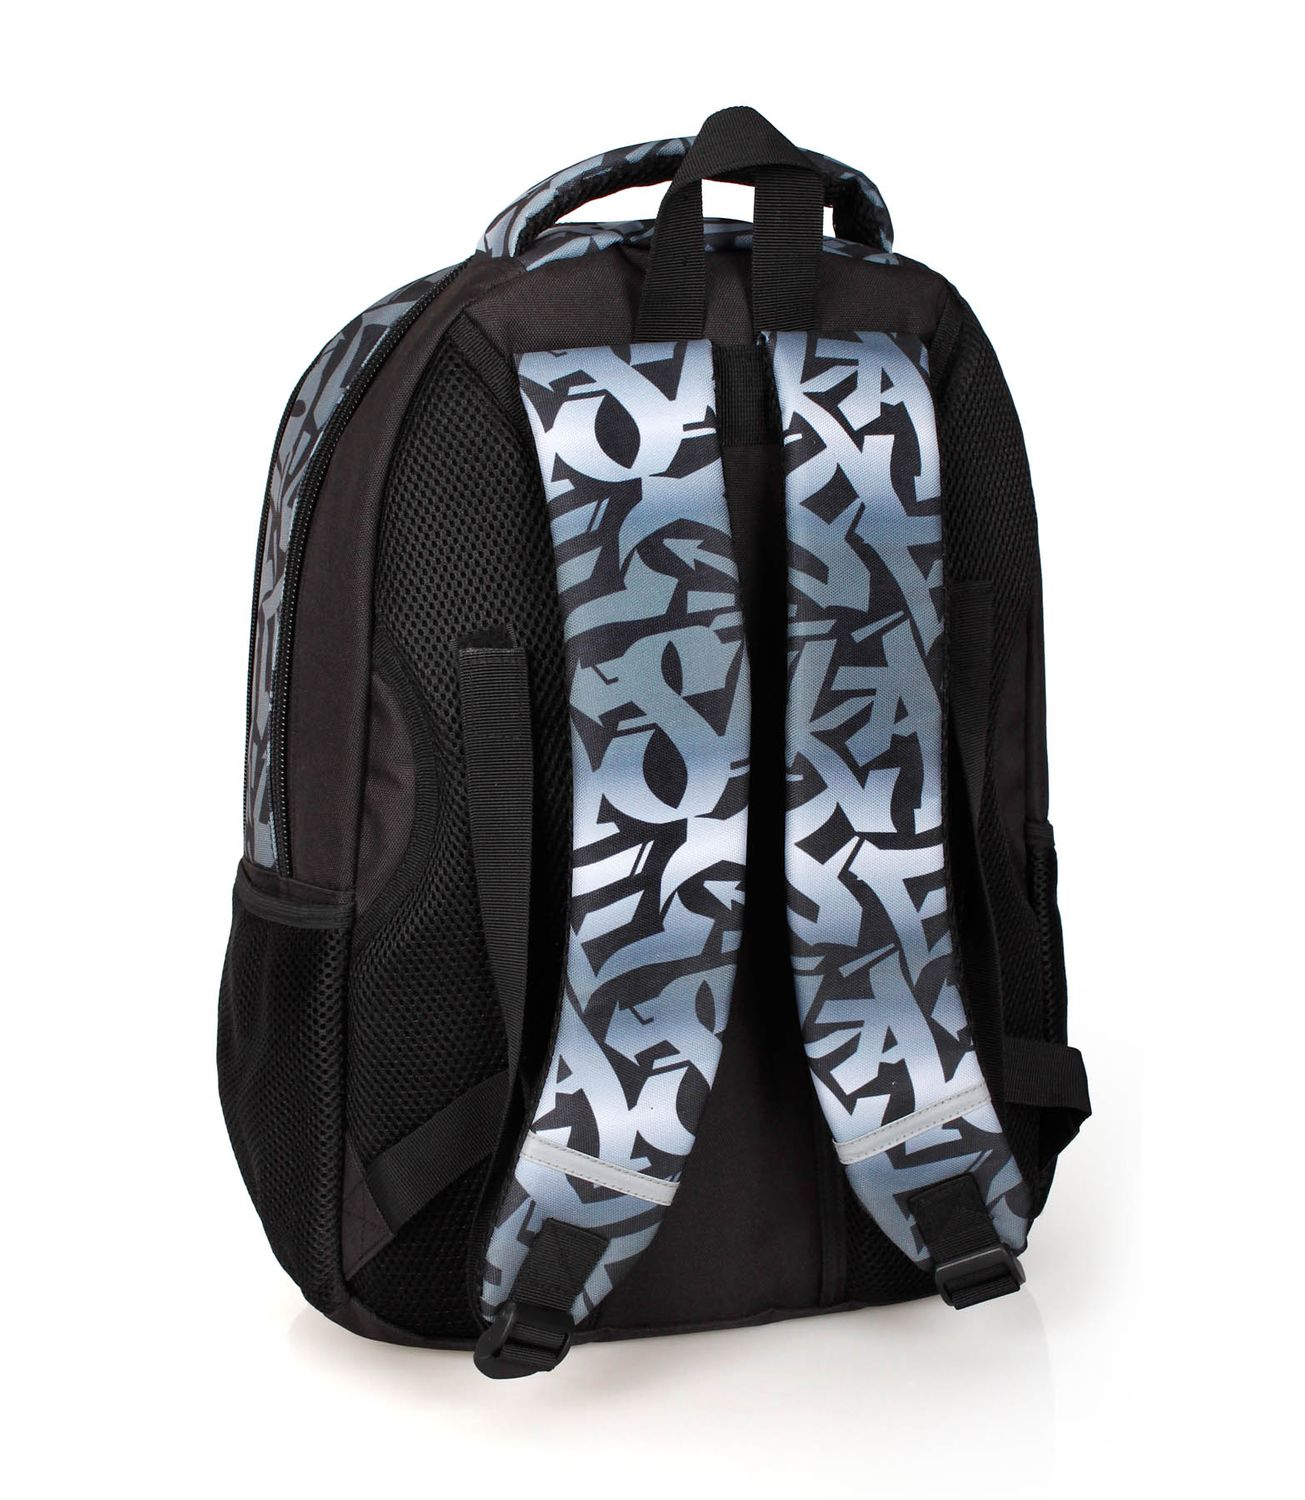 Triple Backpack Rucksack GRAFFITI SKATE – image 2